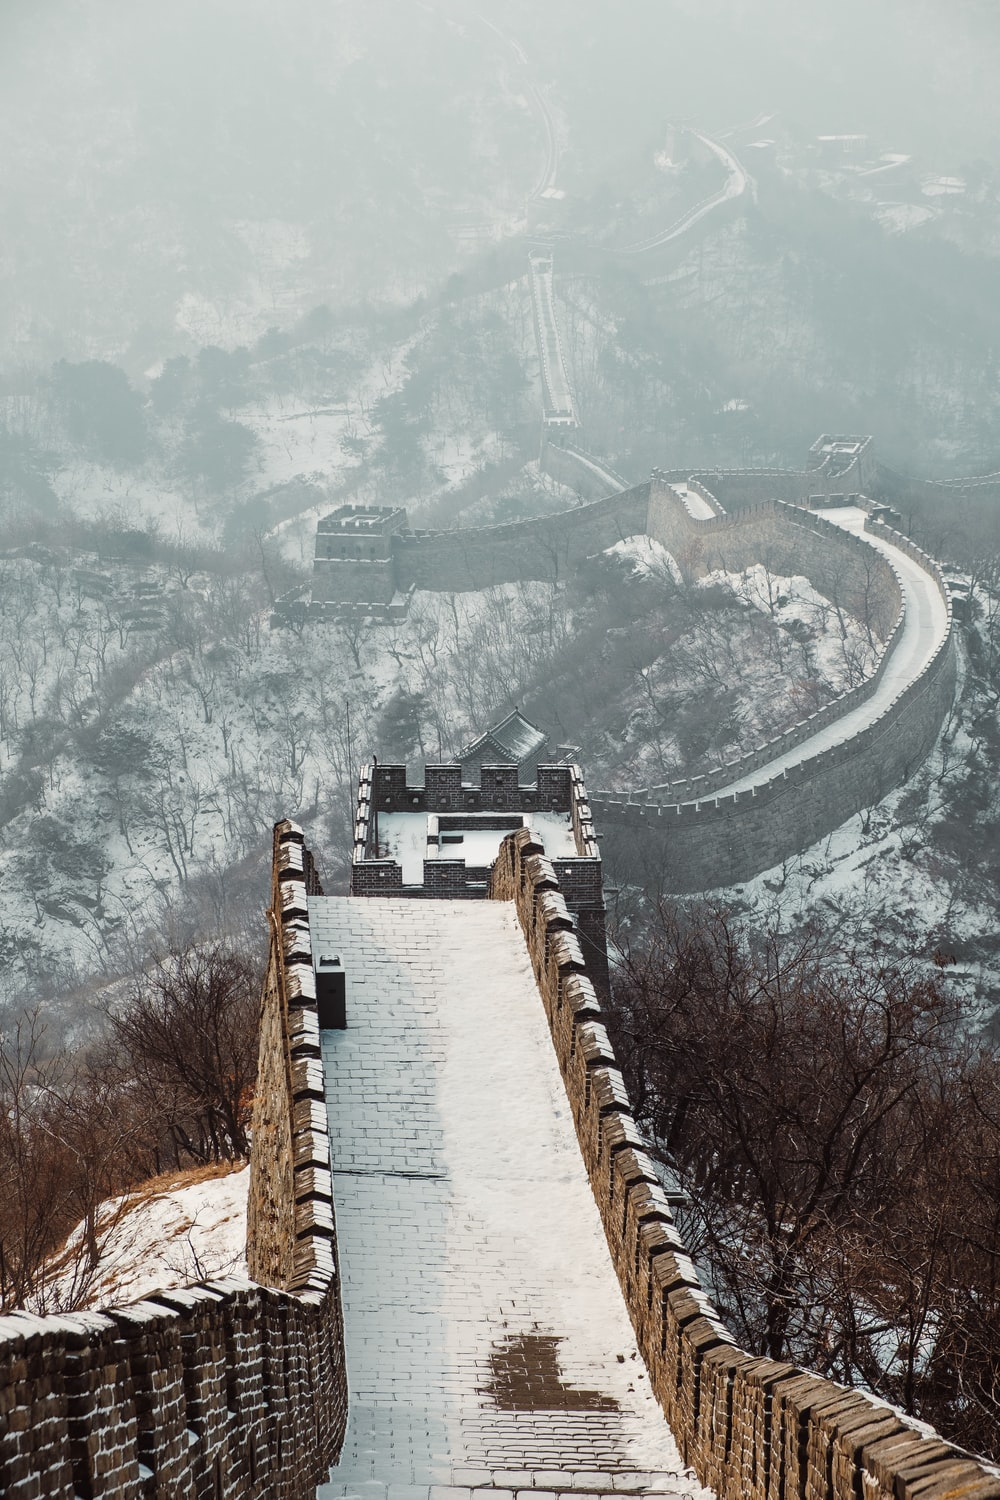 The Great wall of China covered with snow